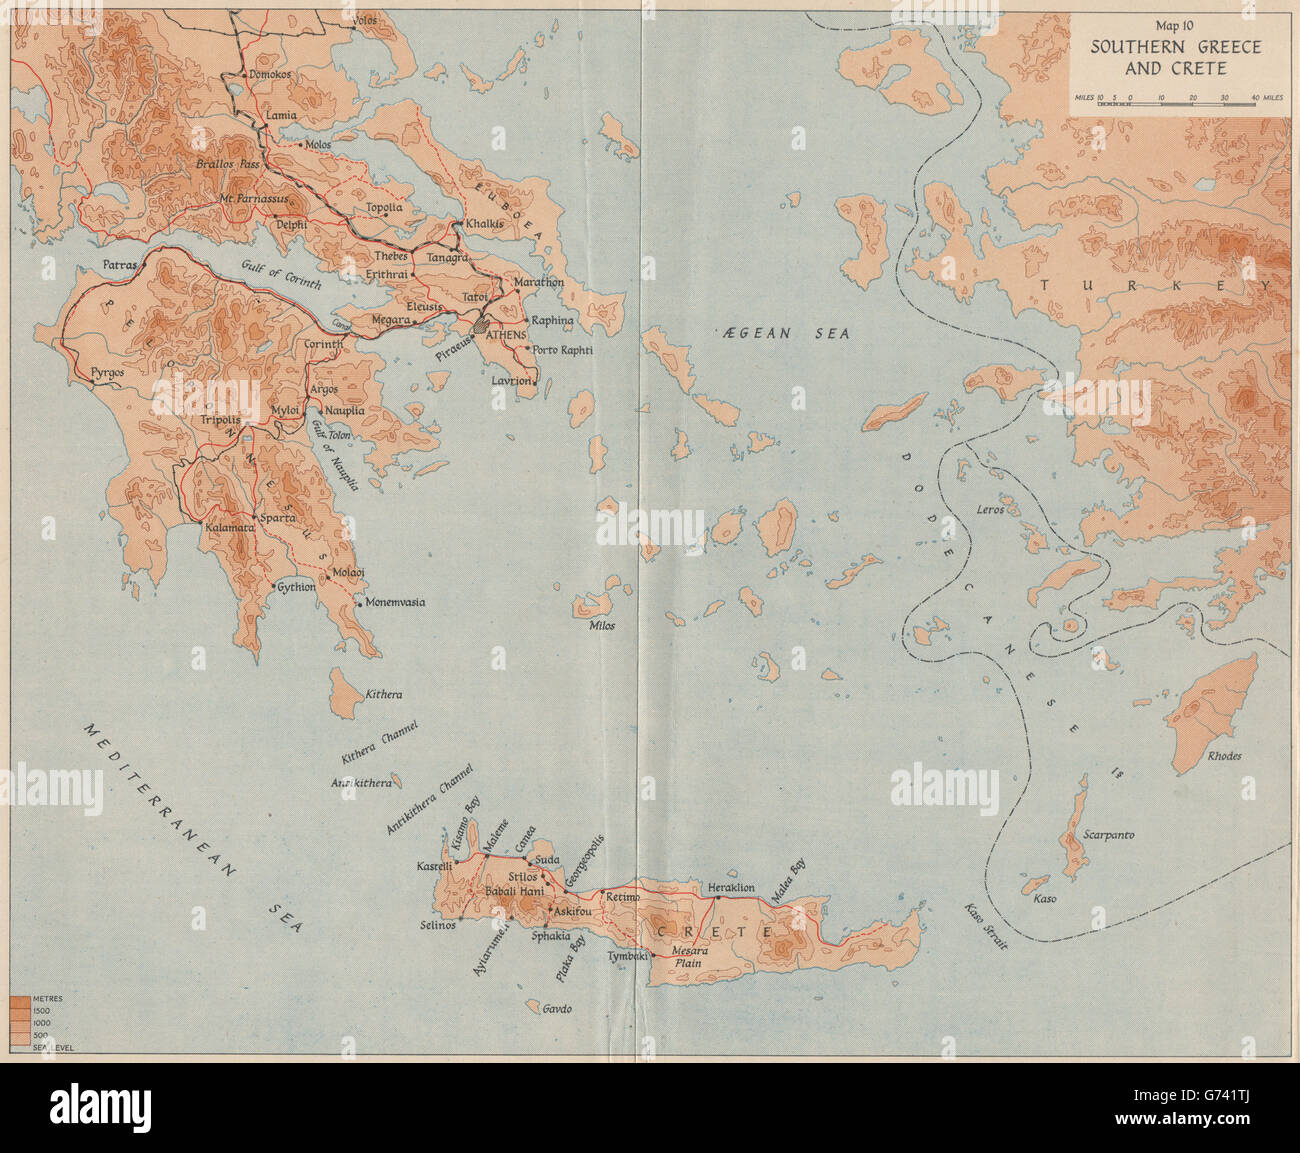 Operation marita 1941 southern greece and crete world war 2 1956 southern greece and crete world war 2 1956 old map gumiabroncs Gallery